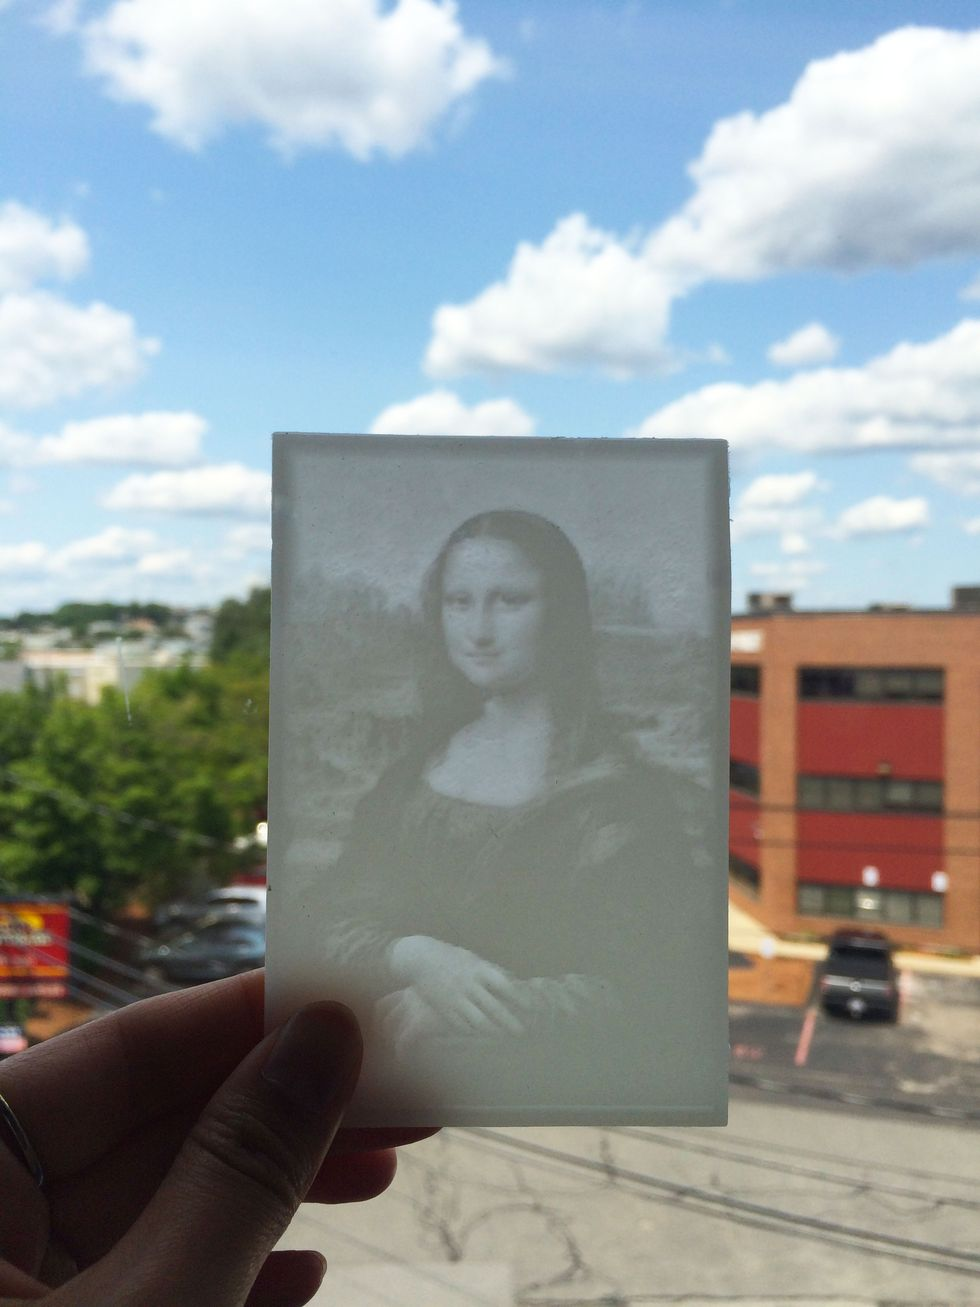 Mona-Lisa-100-Finished_1_Y67wU58.jpg.980x0_q80_crop-smart.jpg